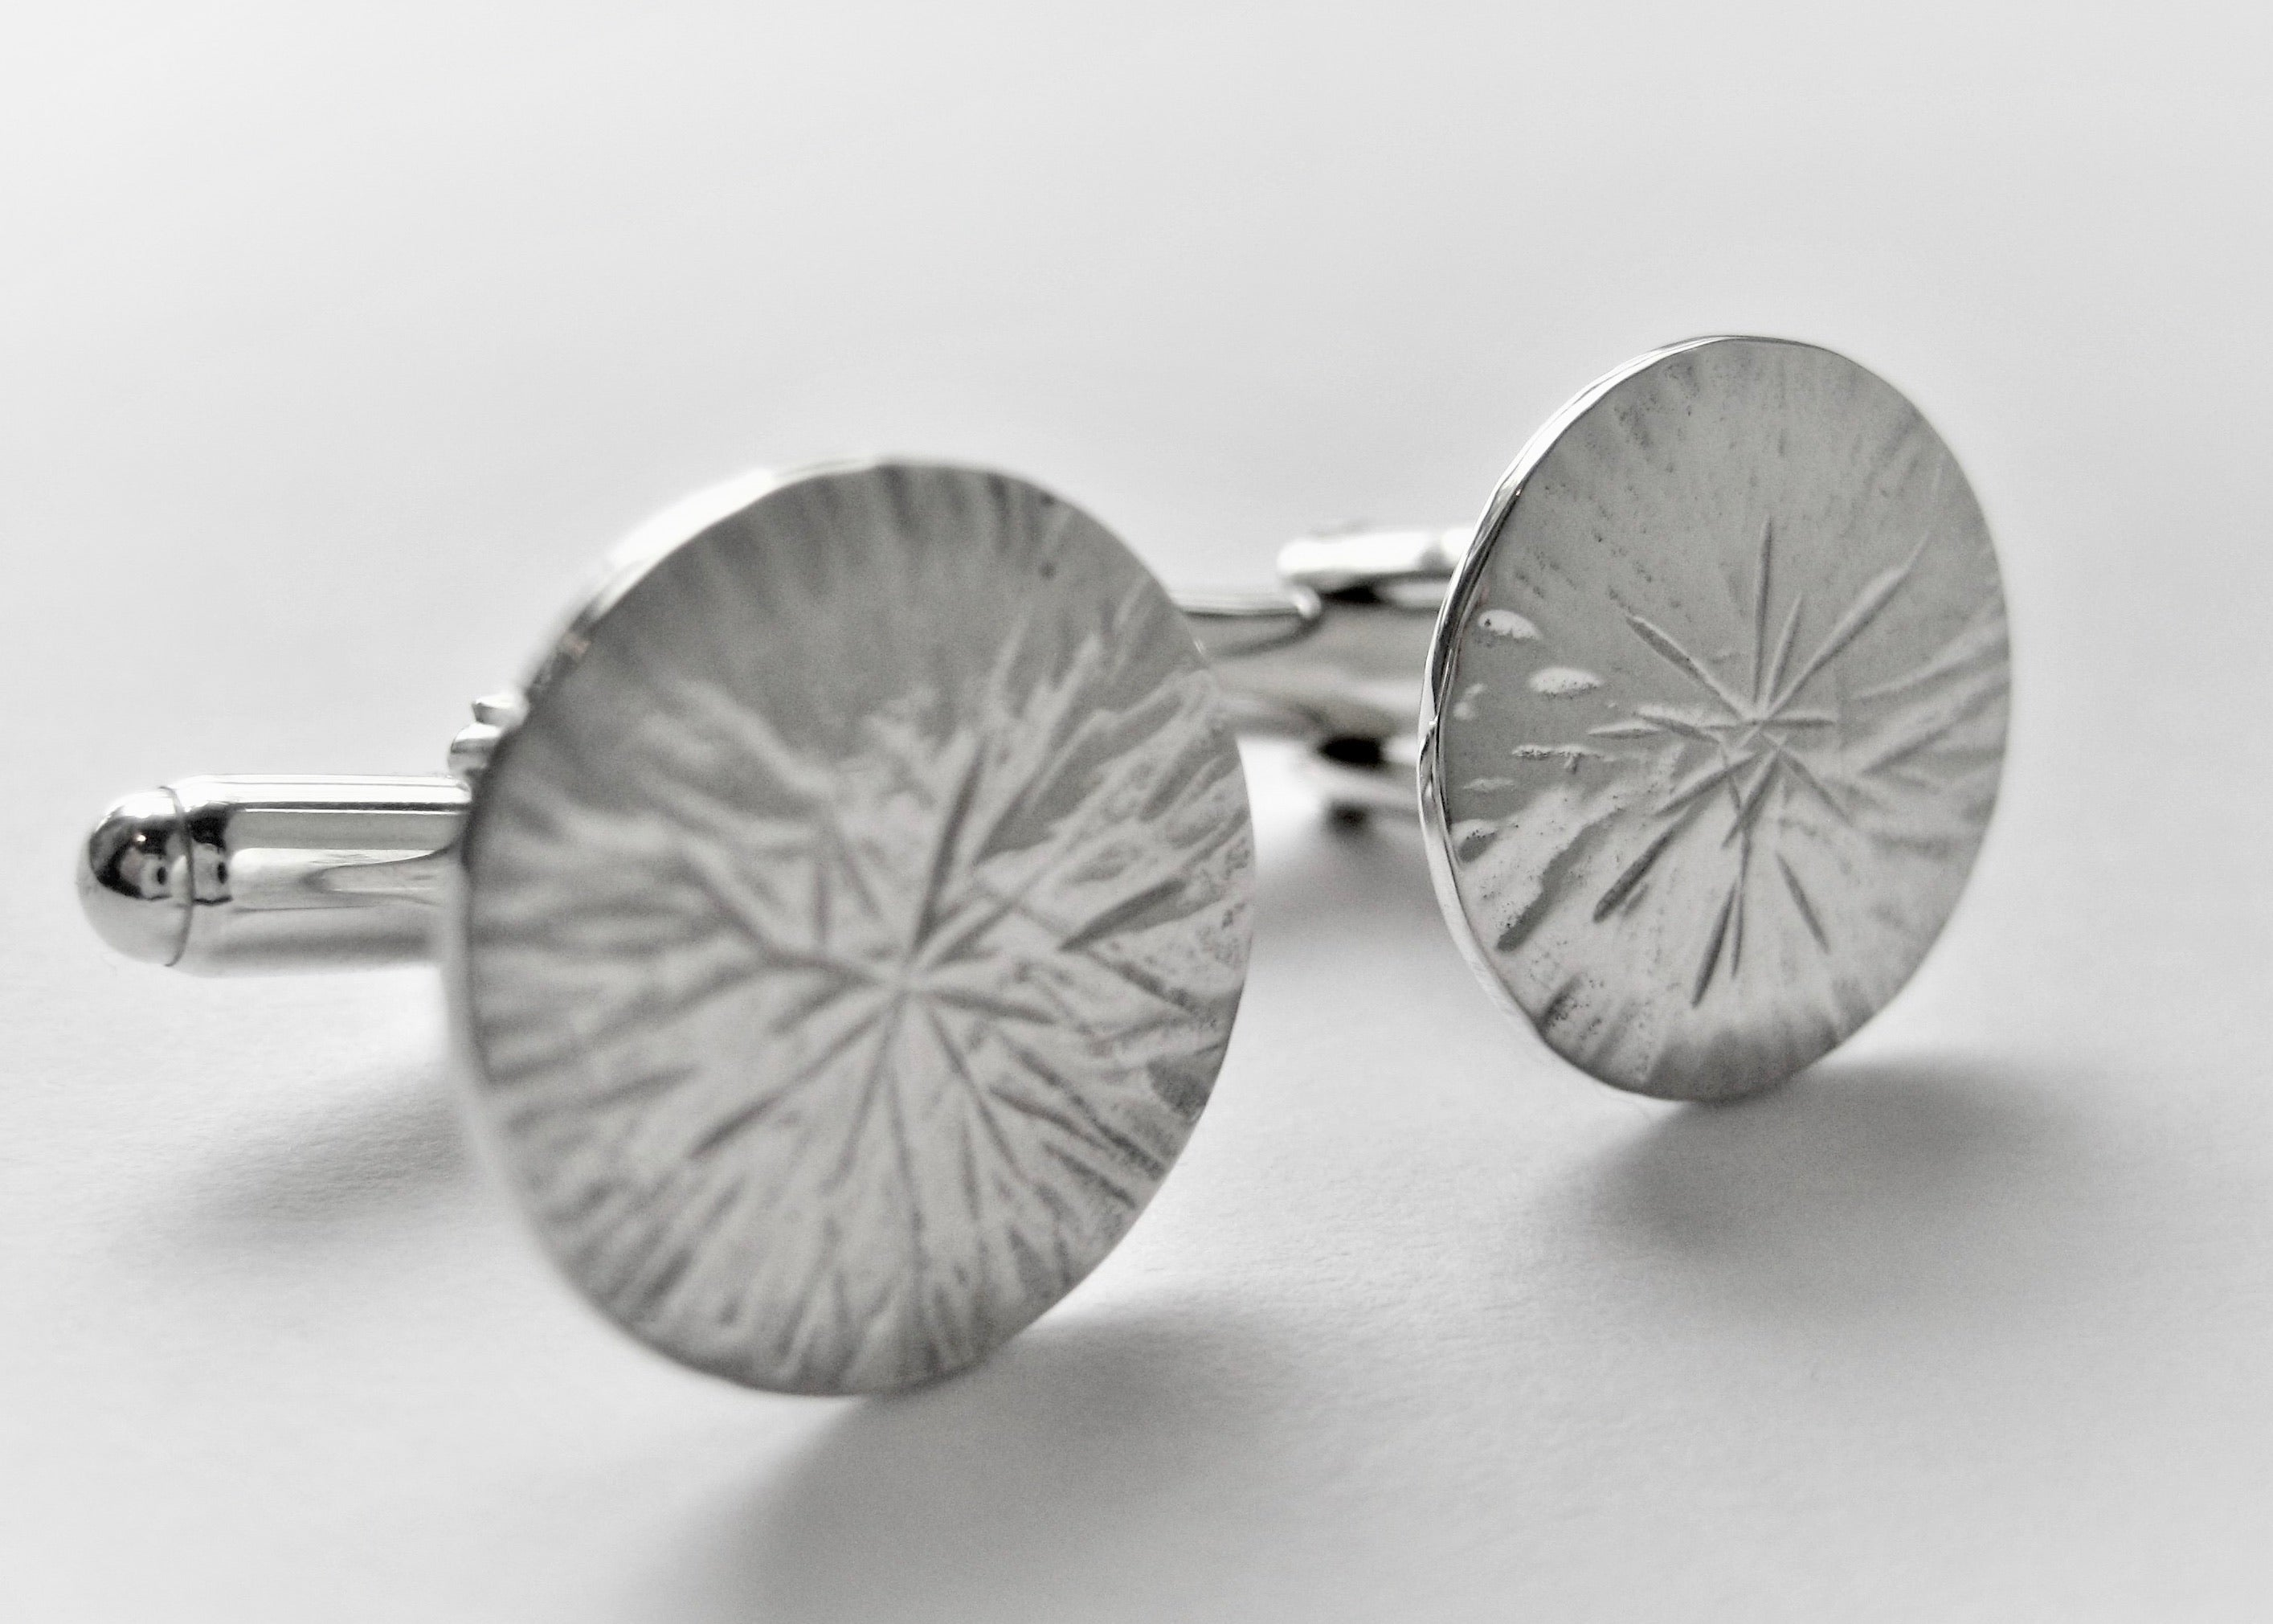 Starry Textured Cuff Links